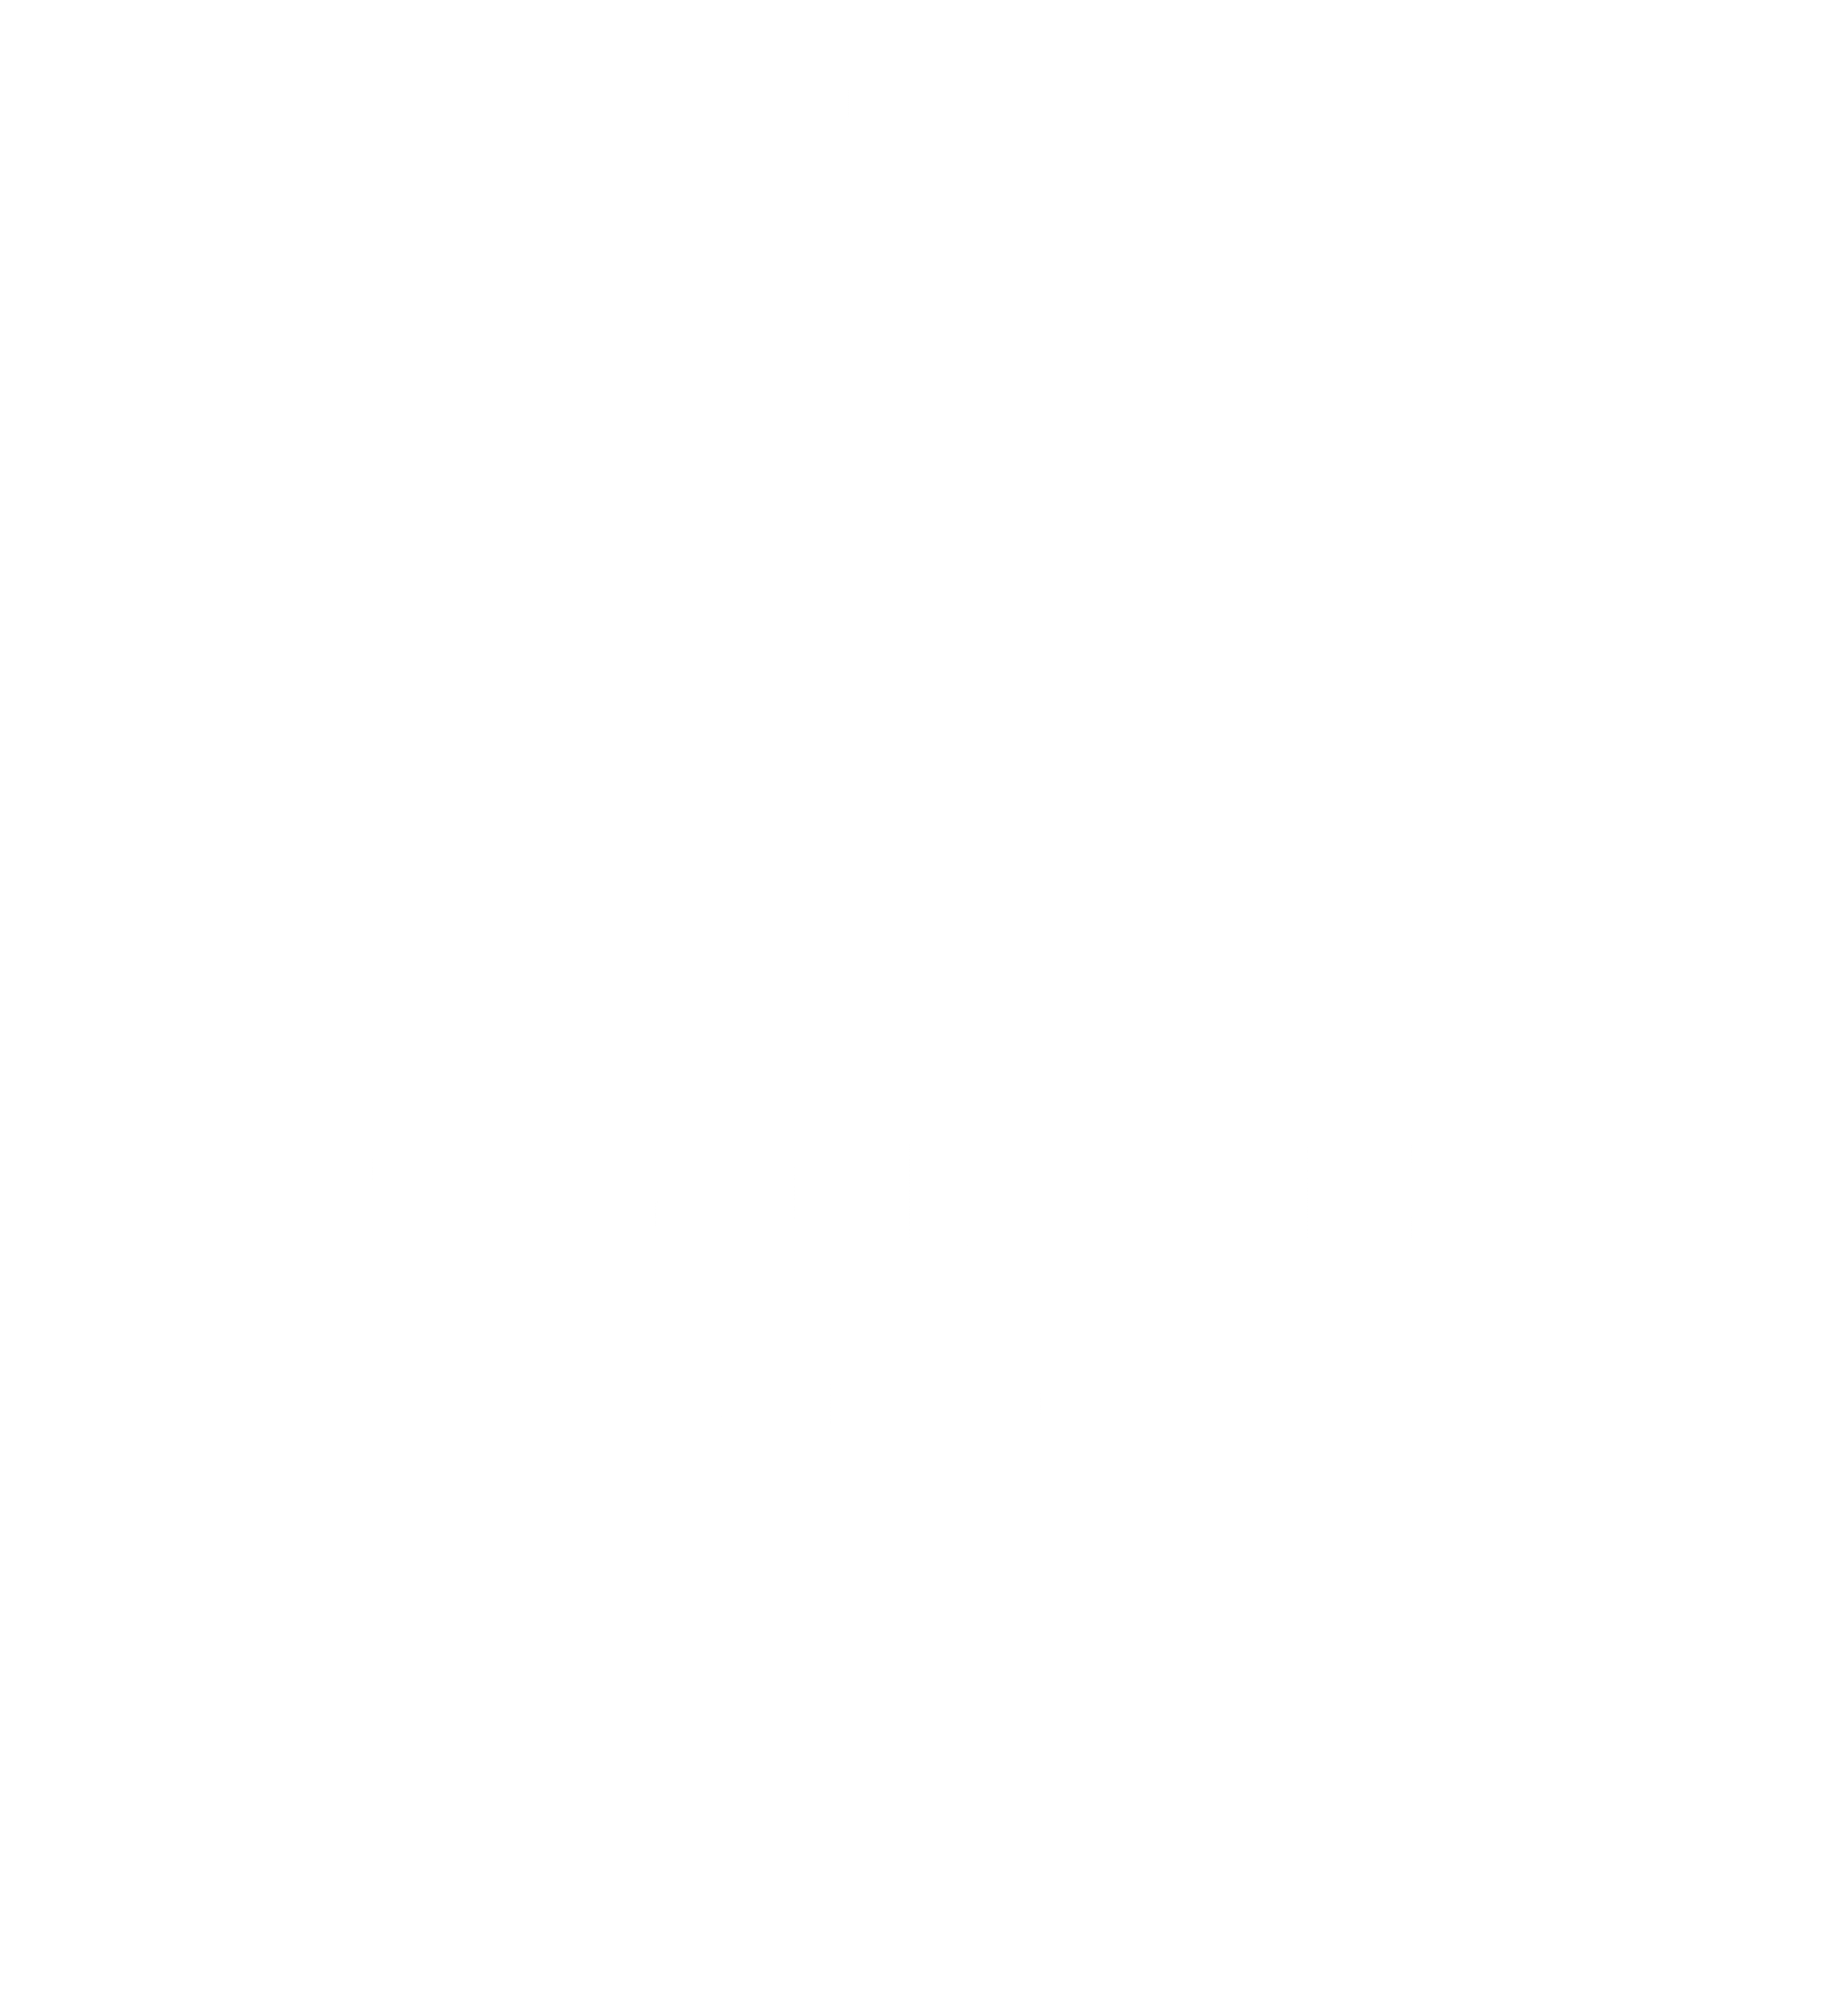 norrys coffee ノーリーズ コーヒー